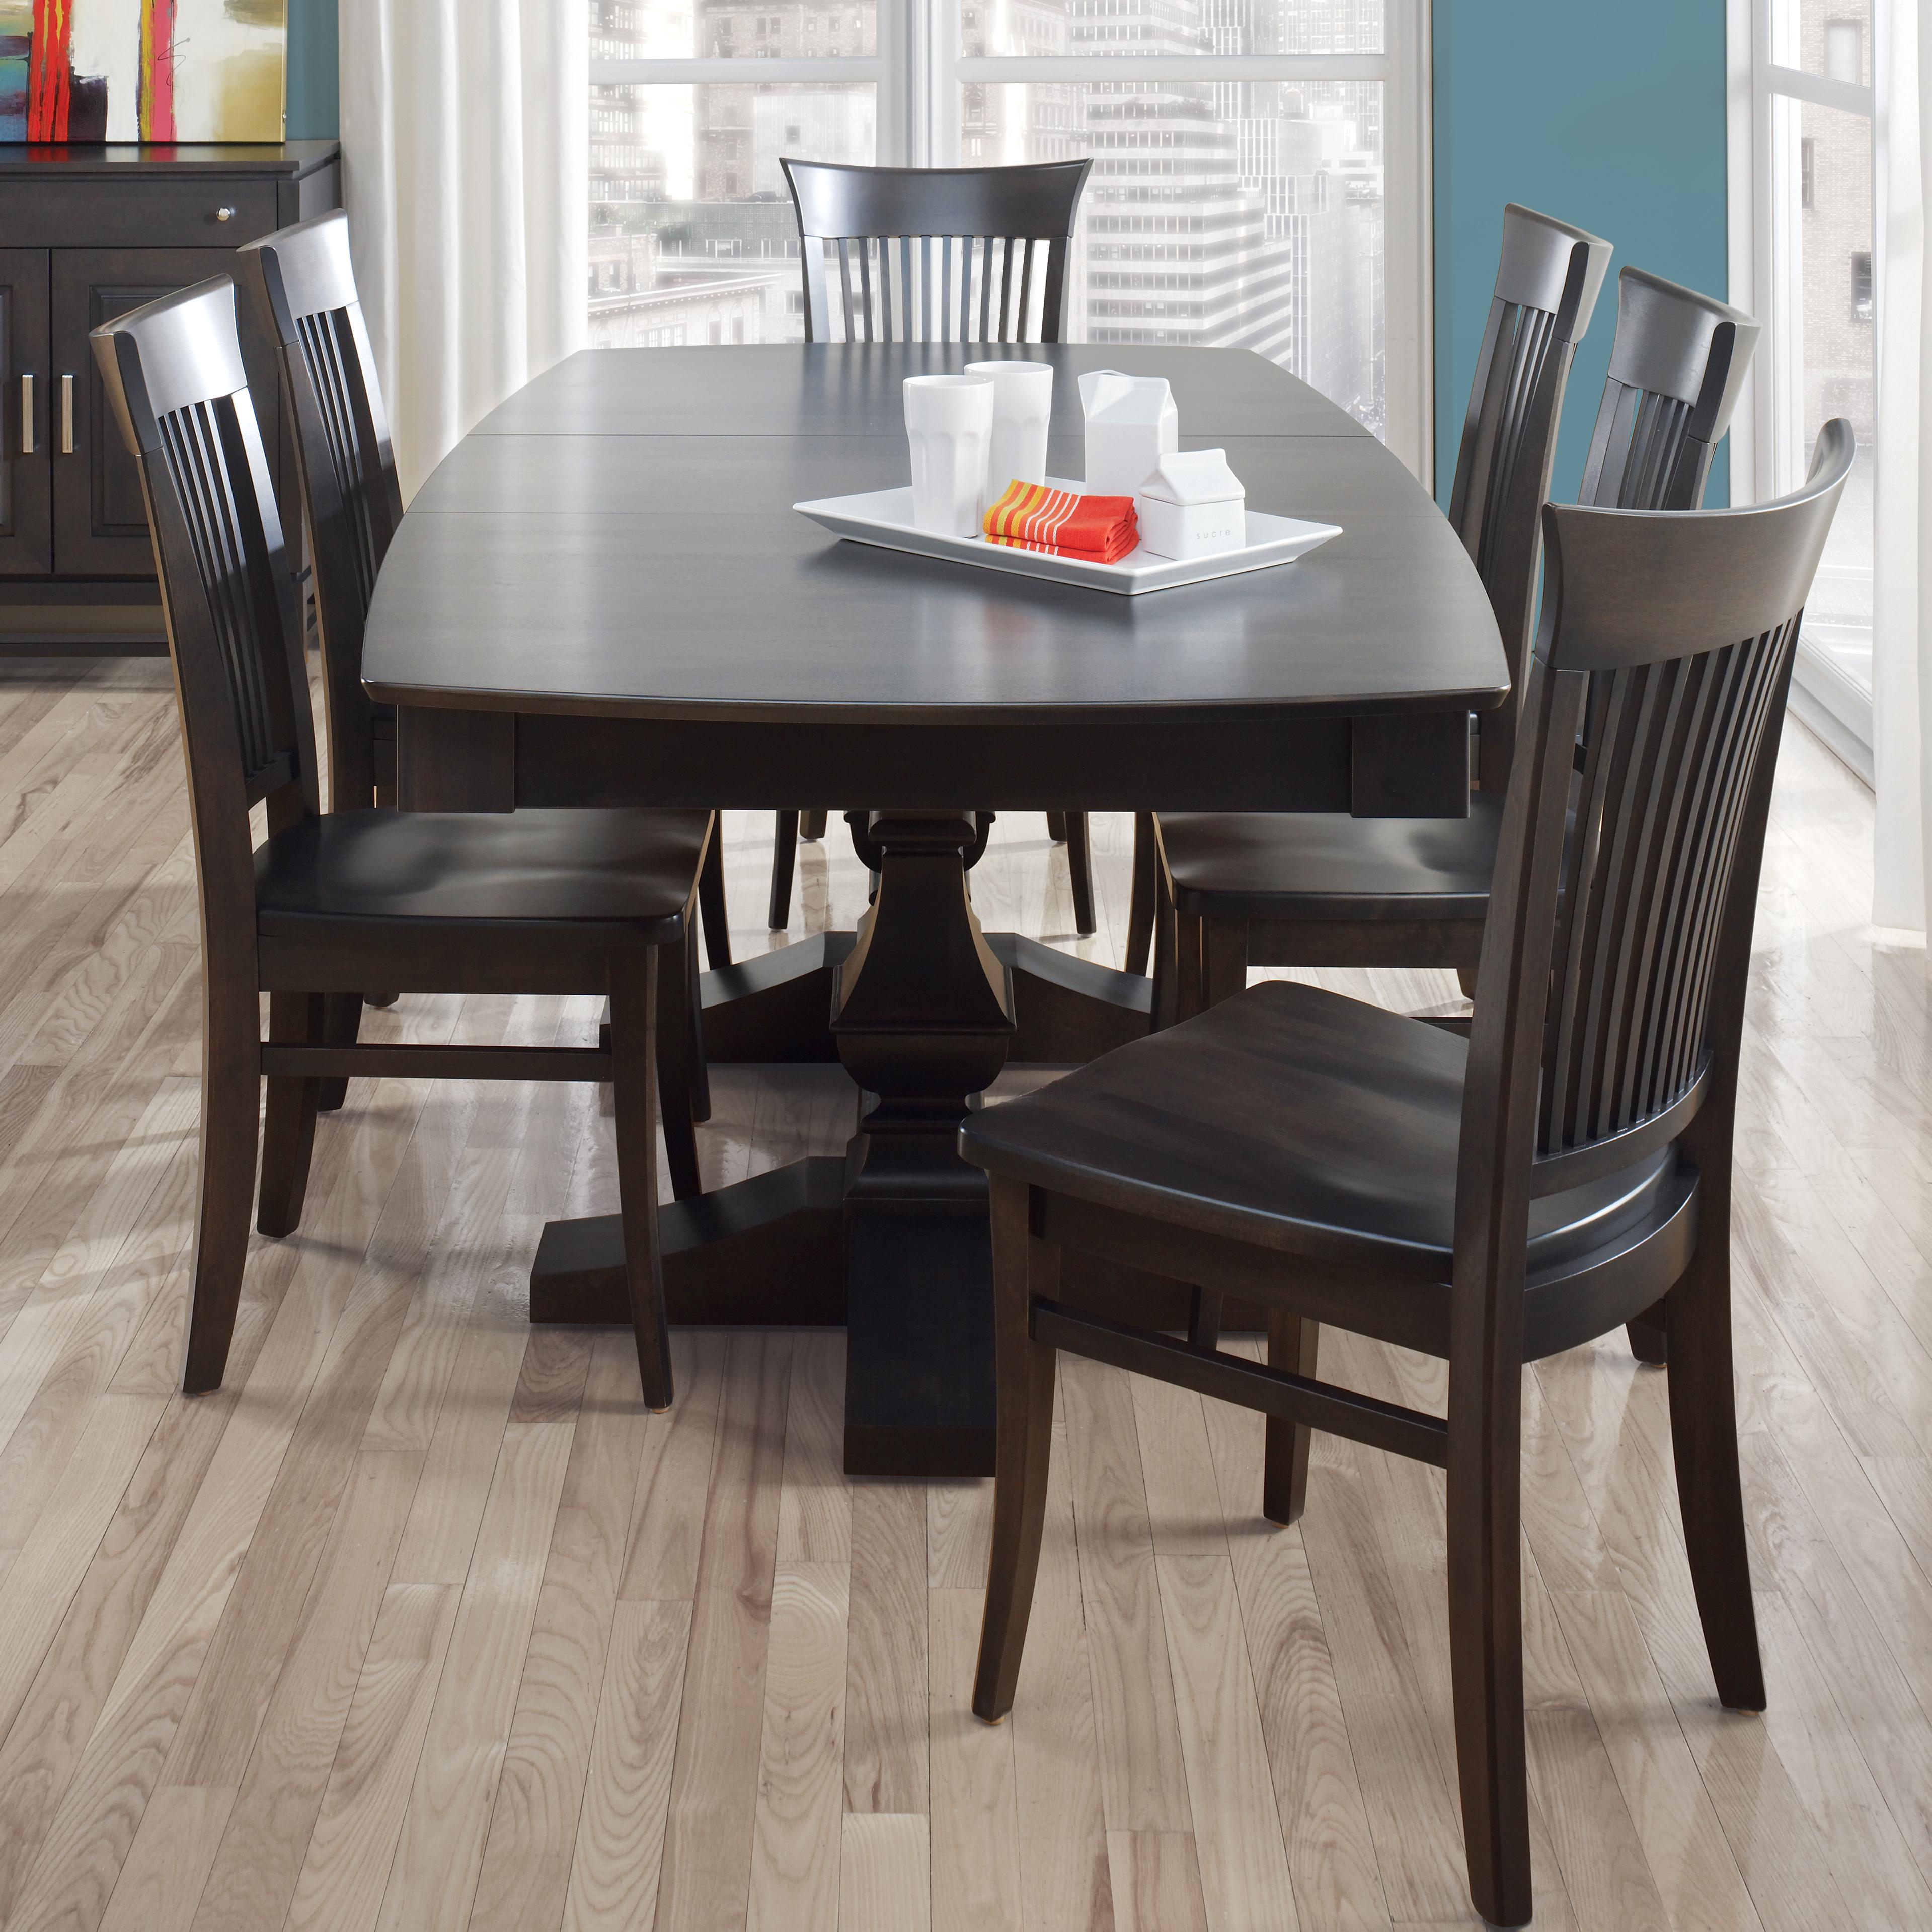 Custom Dining Customizable Boat Shape Table Set by Canadel at Saugerties Furniture Mart